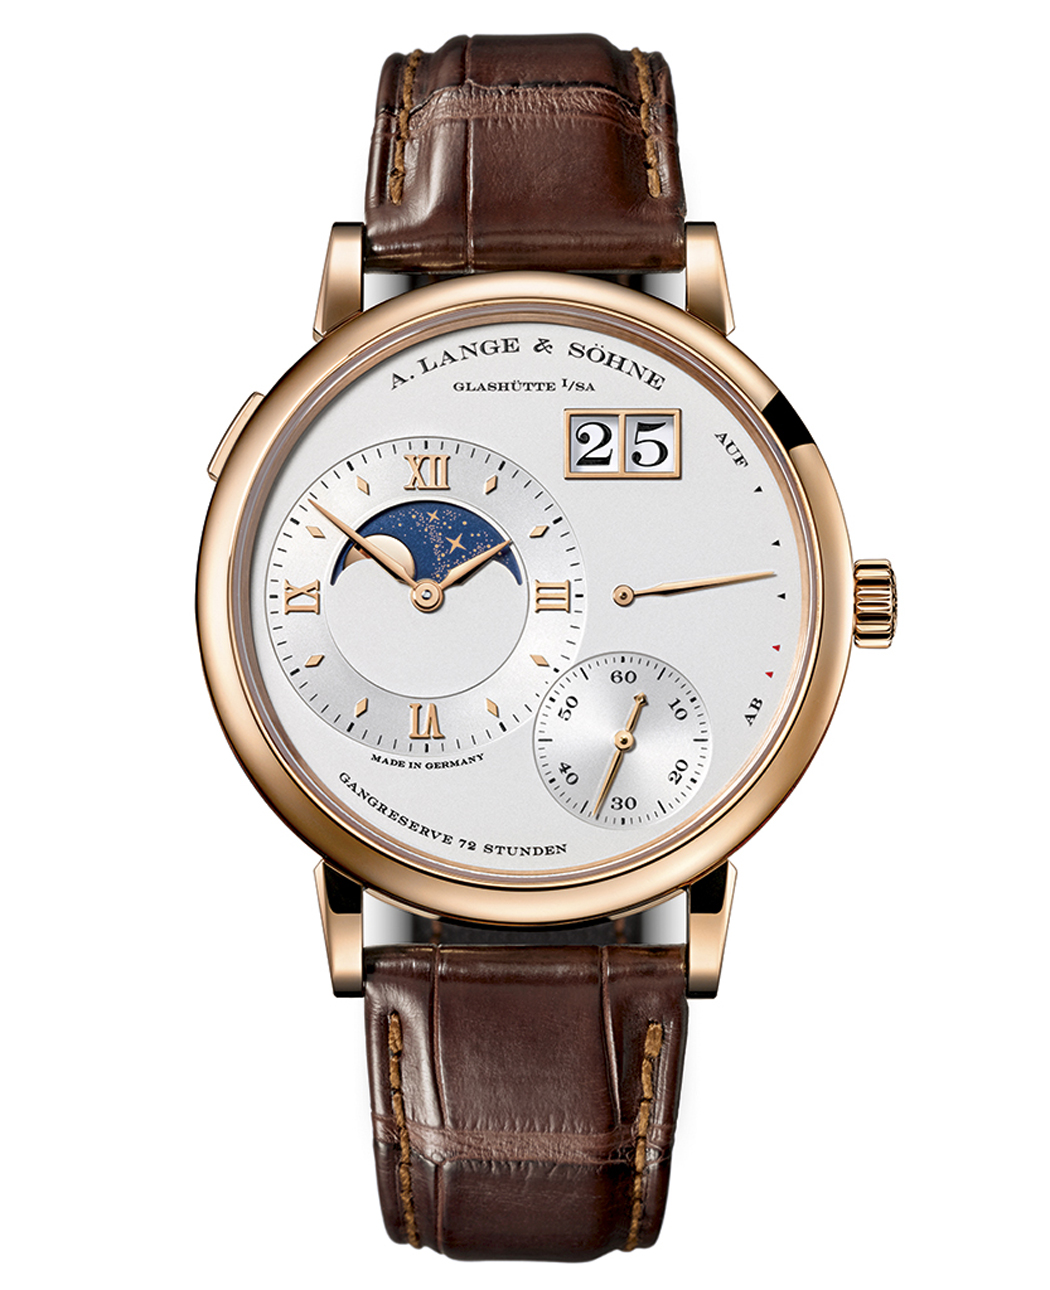 Grand Lange 1 Moon Phase de A. Lange & Söhne